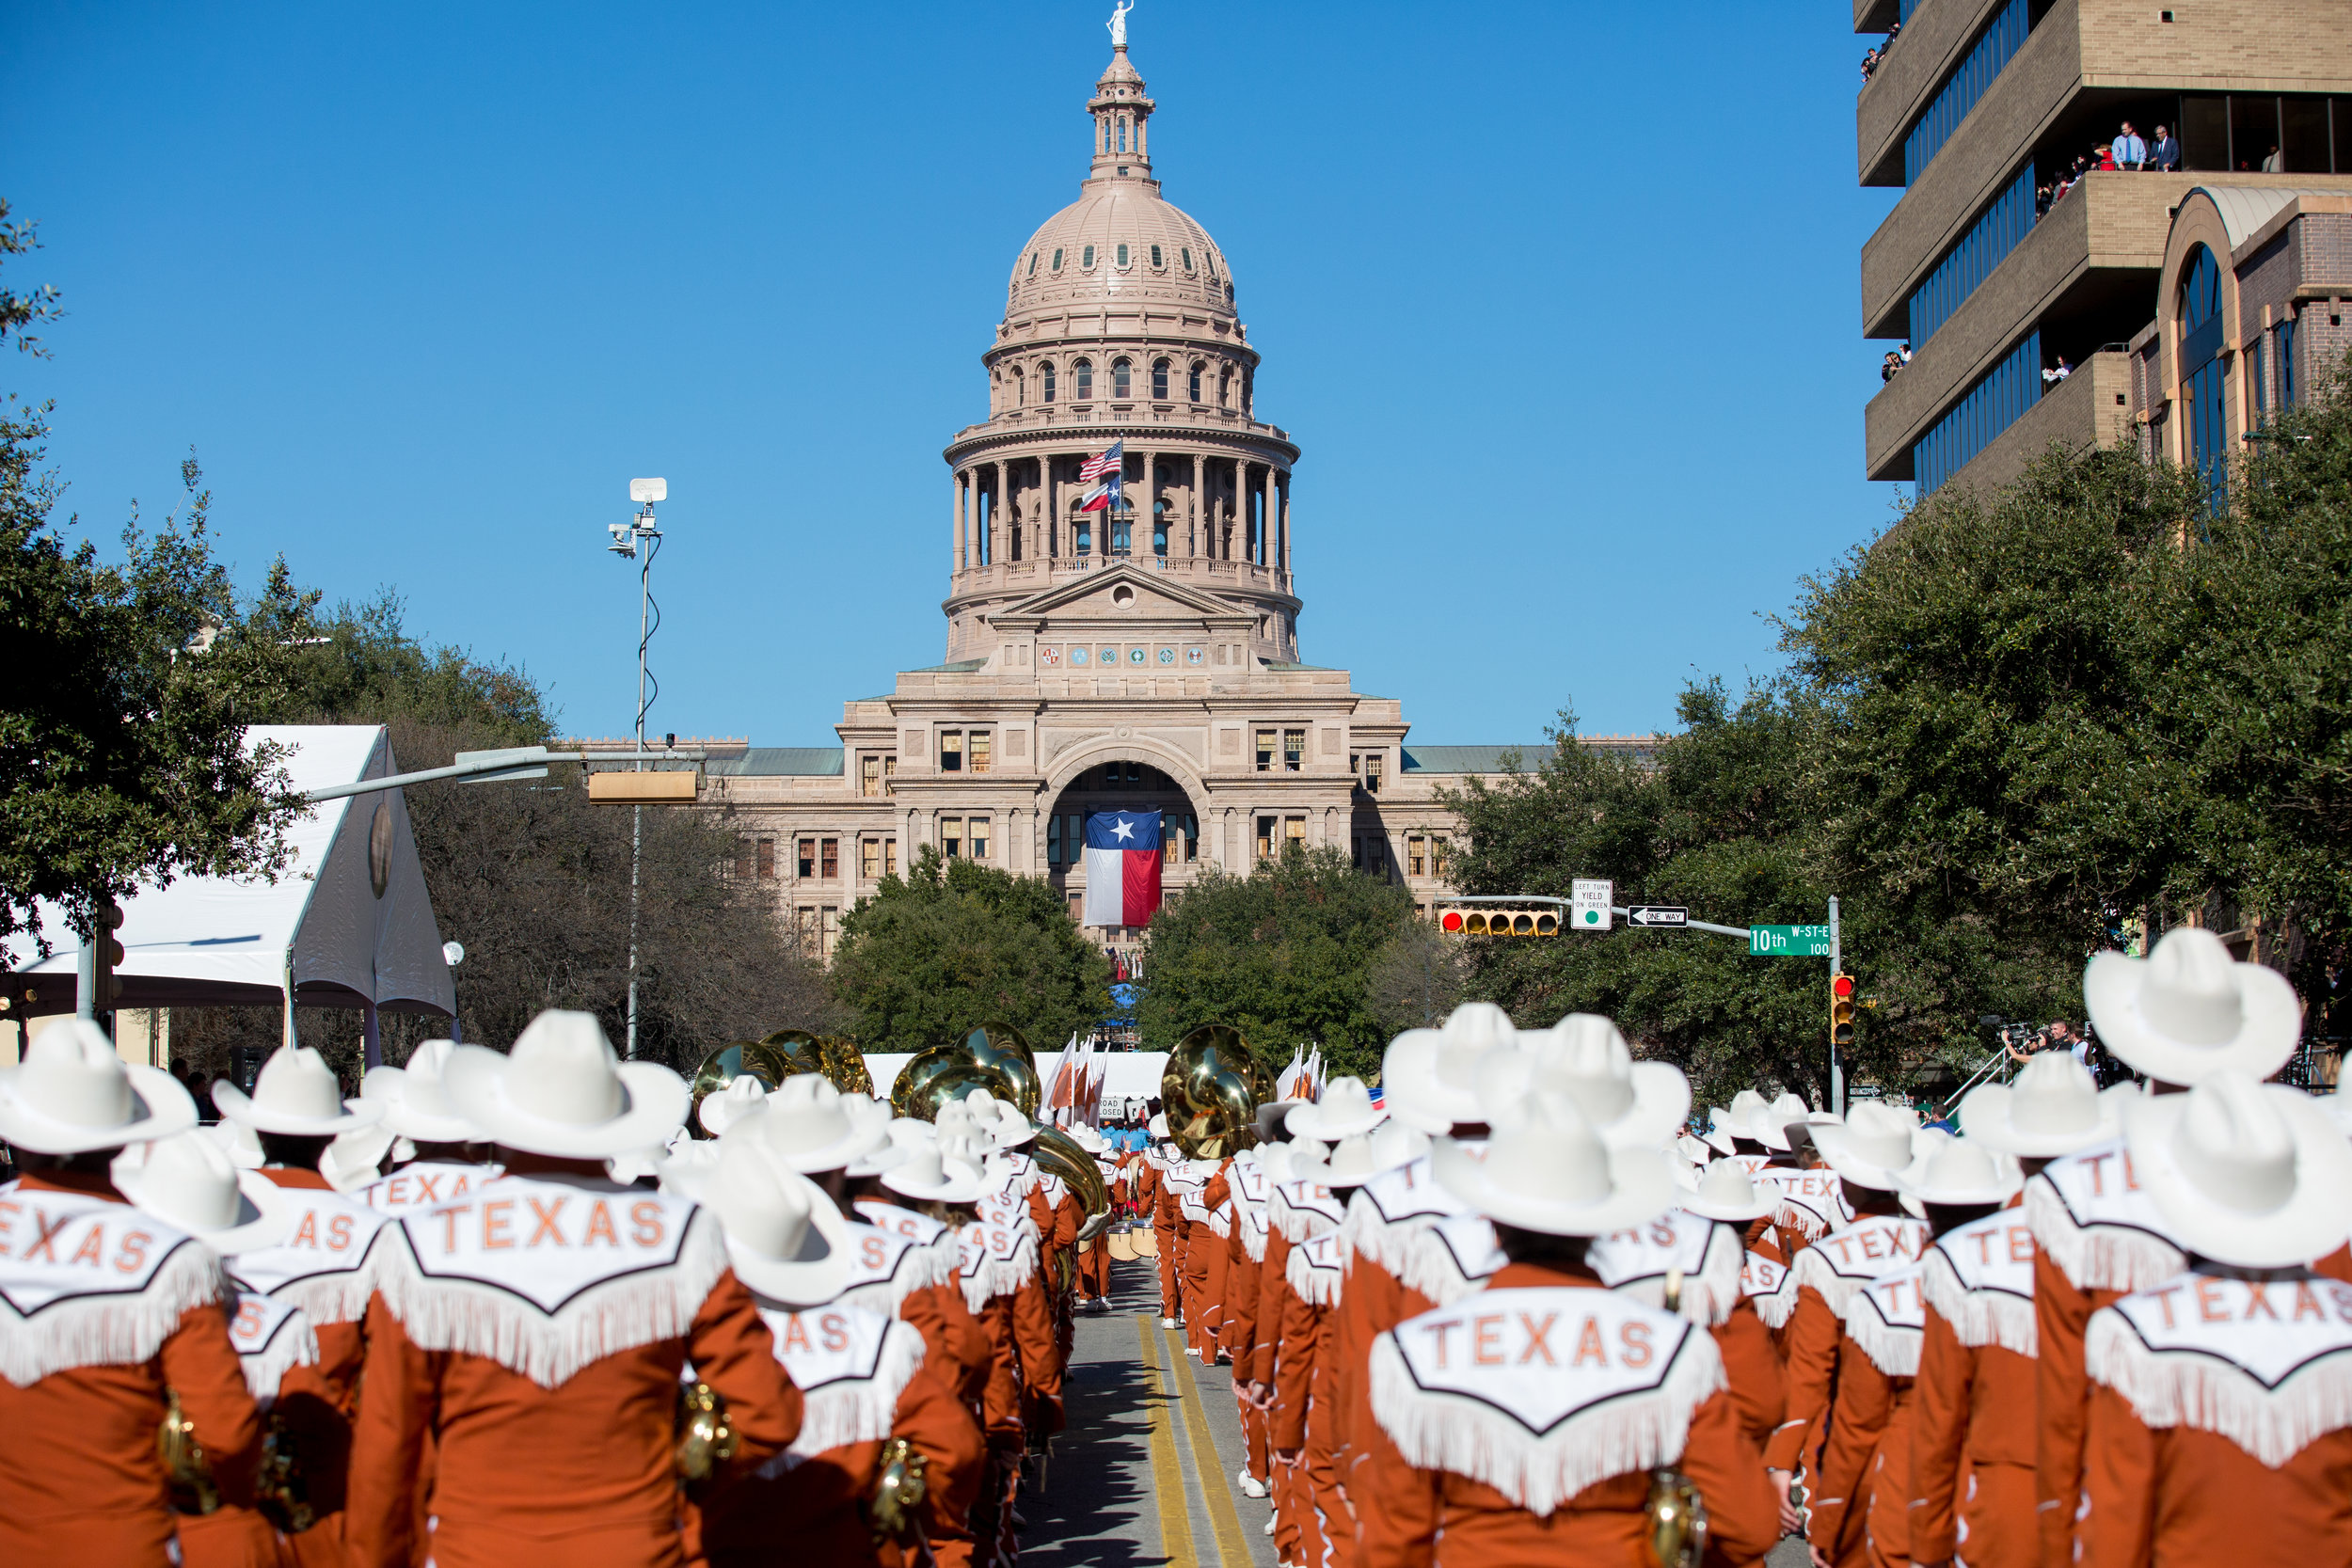 University of Texas at Austin's marching band performs during Governor Greg Abbott's inauguration.